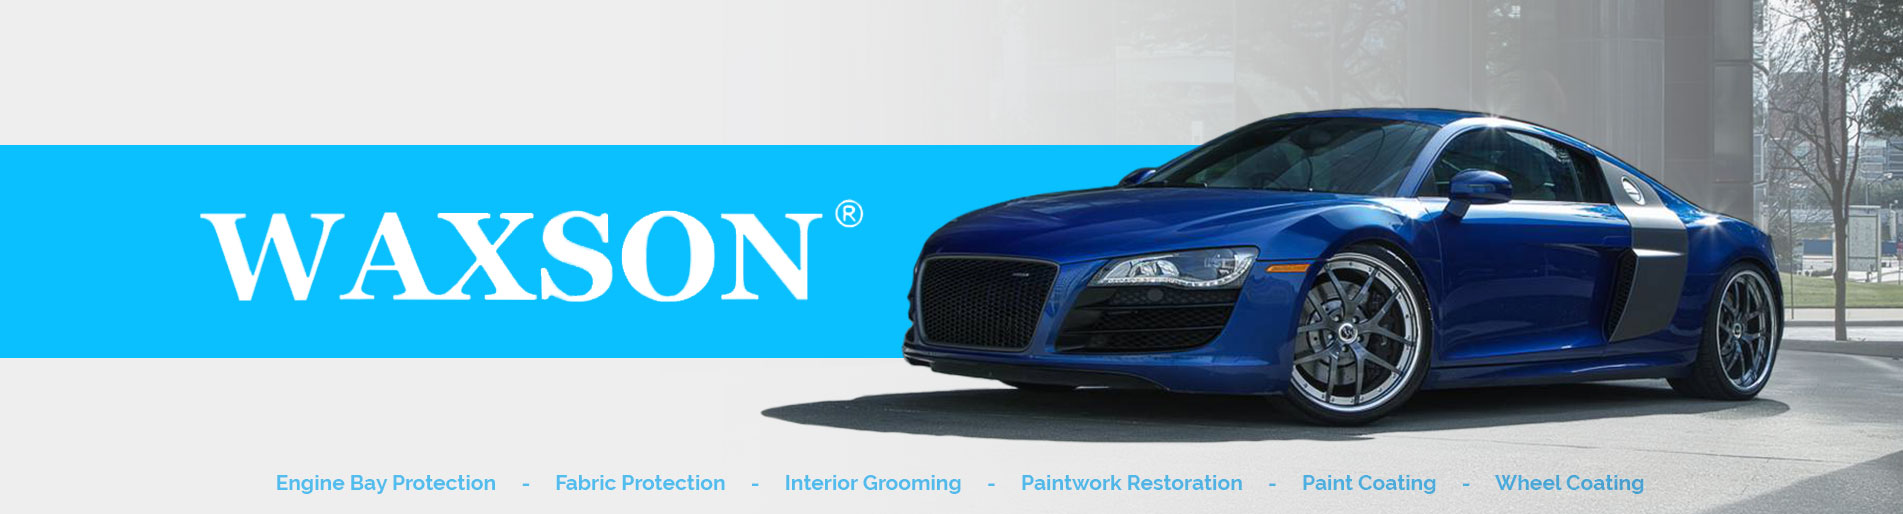 Waxson-Services-Banner